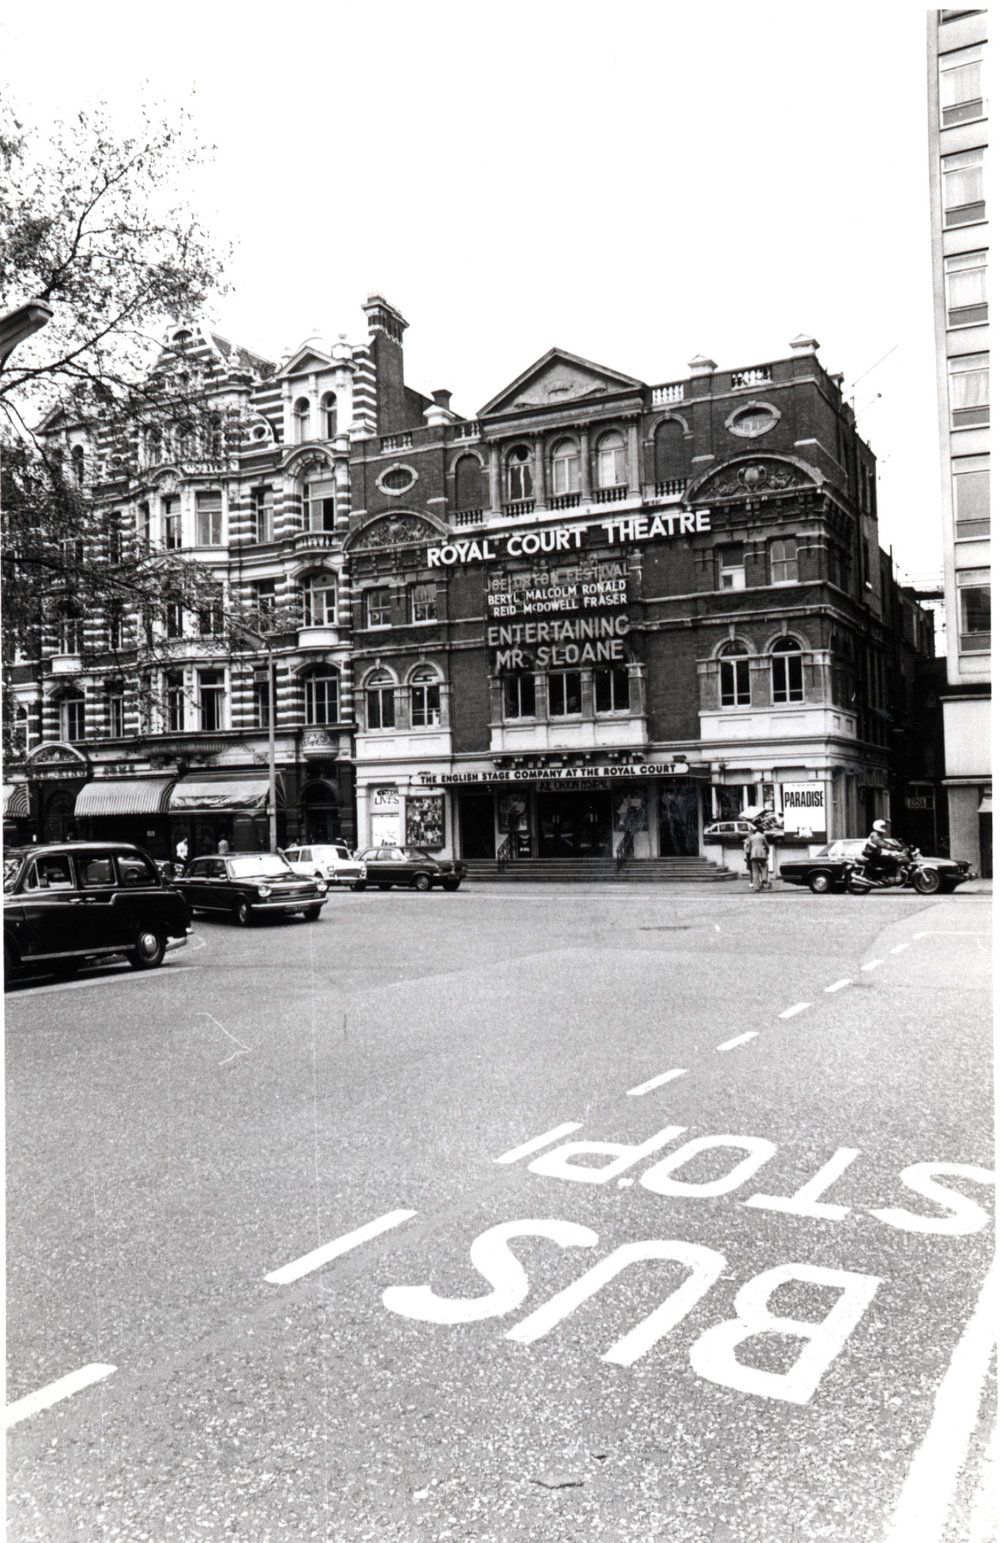 Sloane Square - east side, Royal Court Theatre 1975 KS4752.JPG